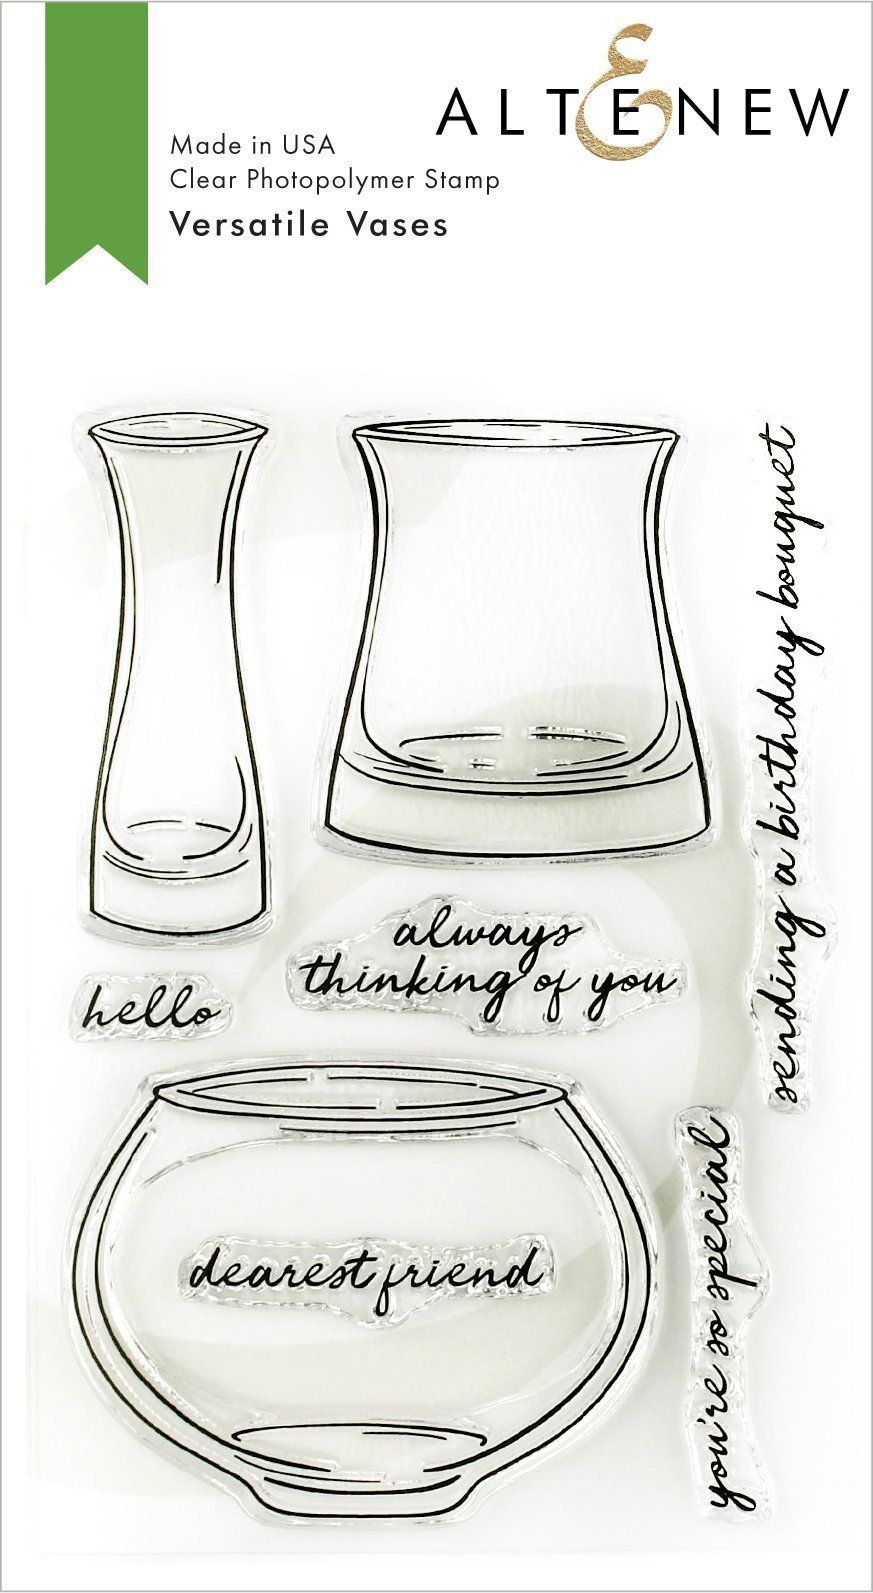 *NEW* - Altenew - Versatile Vases Stamp Set